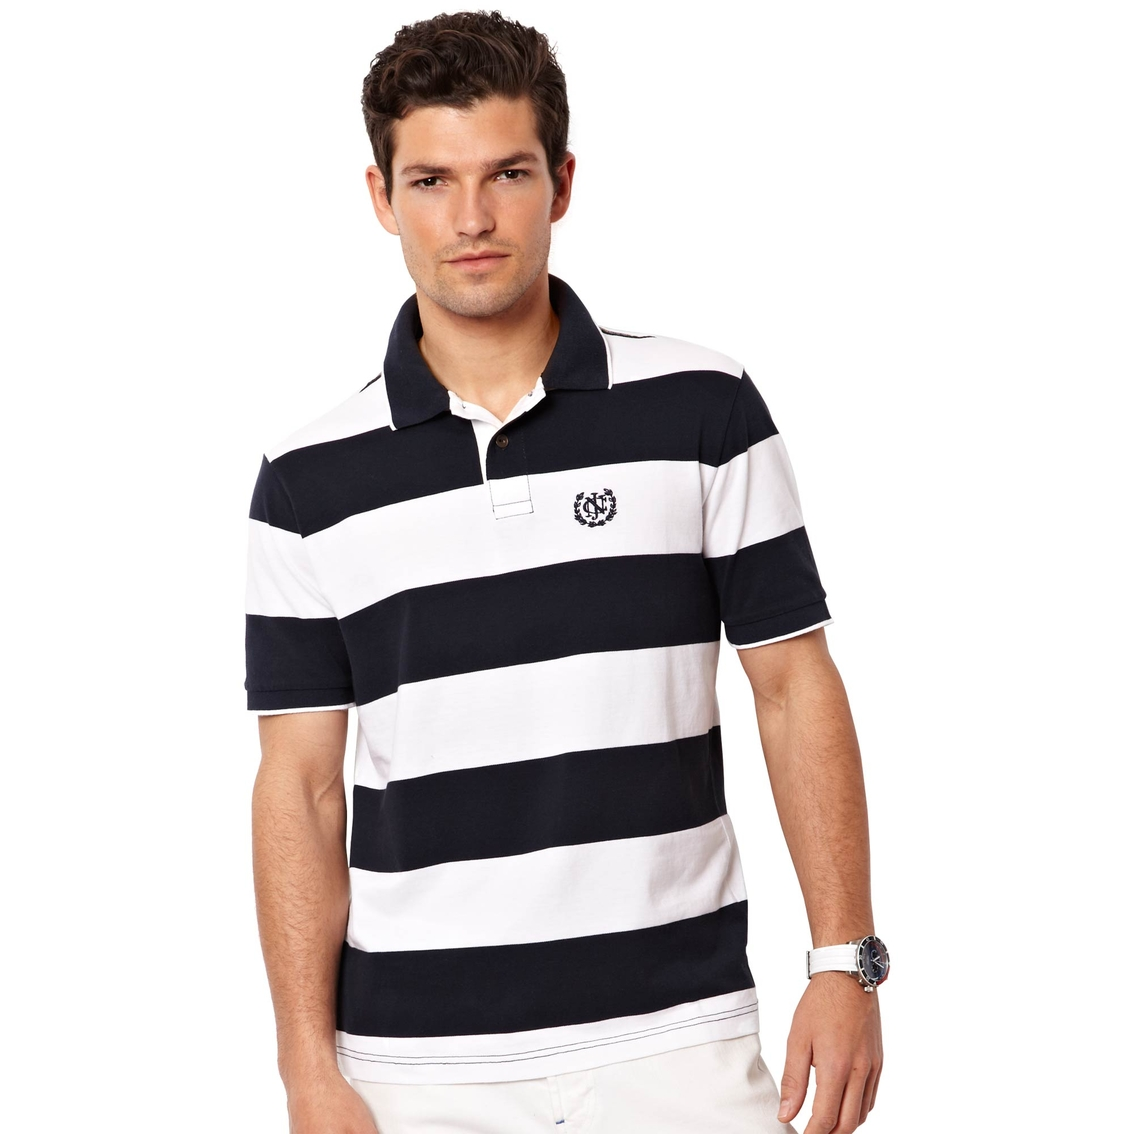 Nautica Rugby Striped Polo Shirt Polos Apparel Shop The Exchange